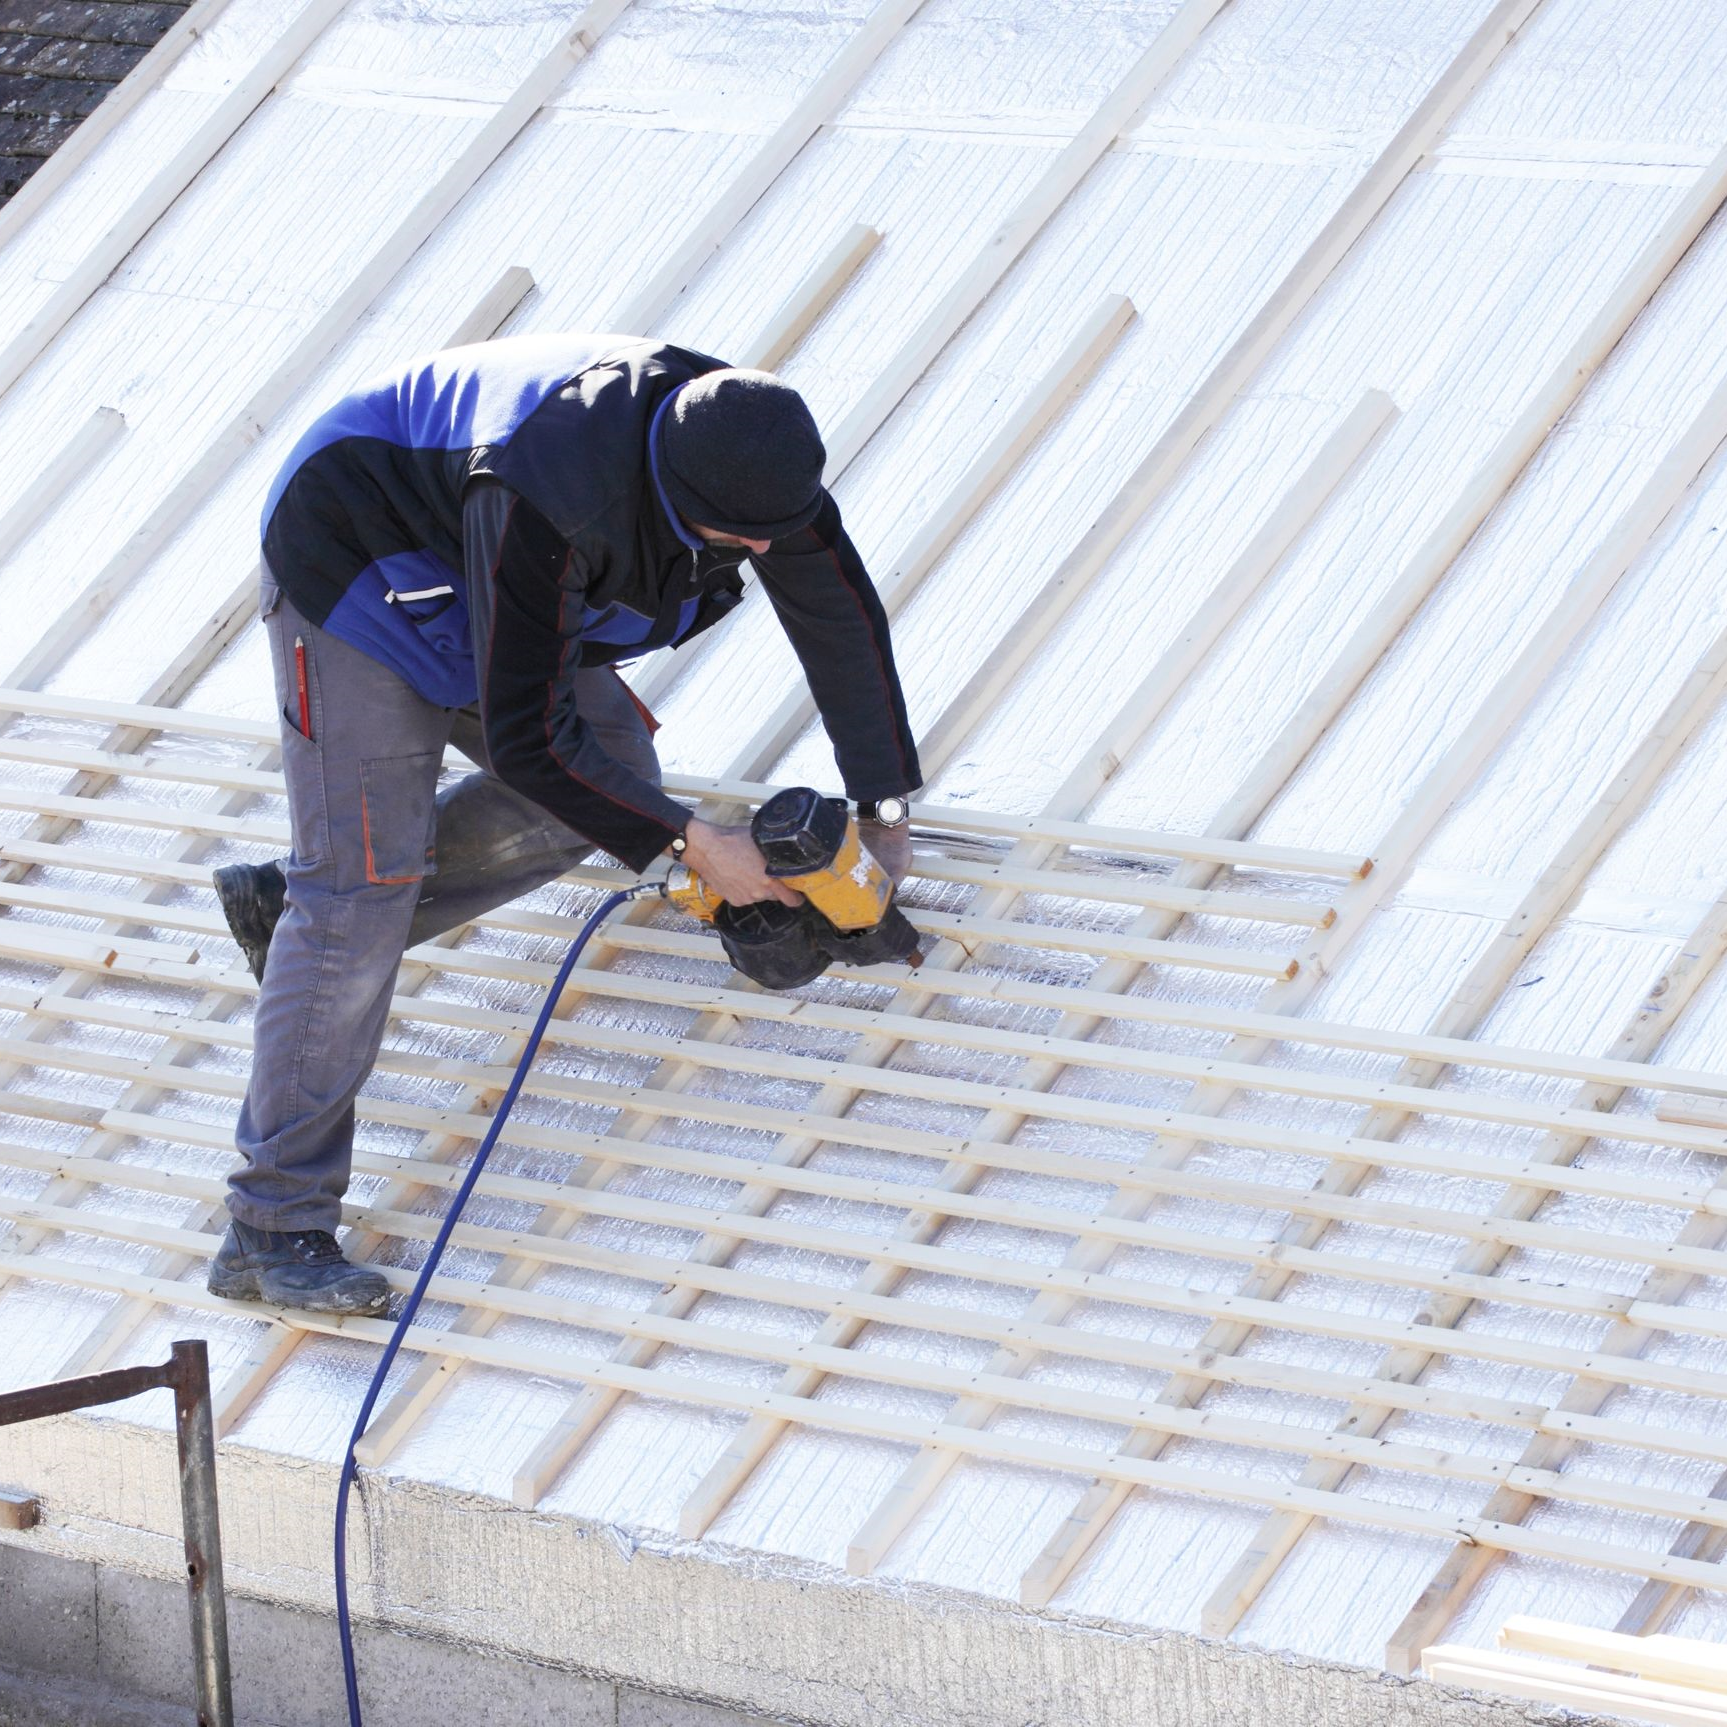 A roofer repairing a commercial roof.